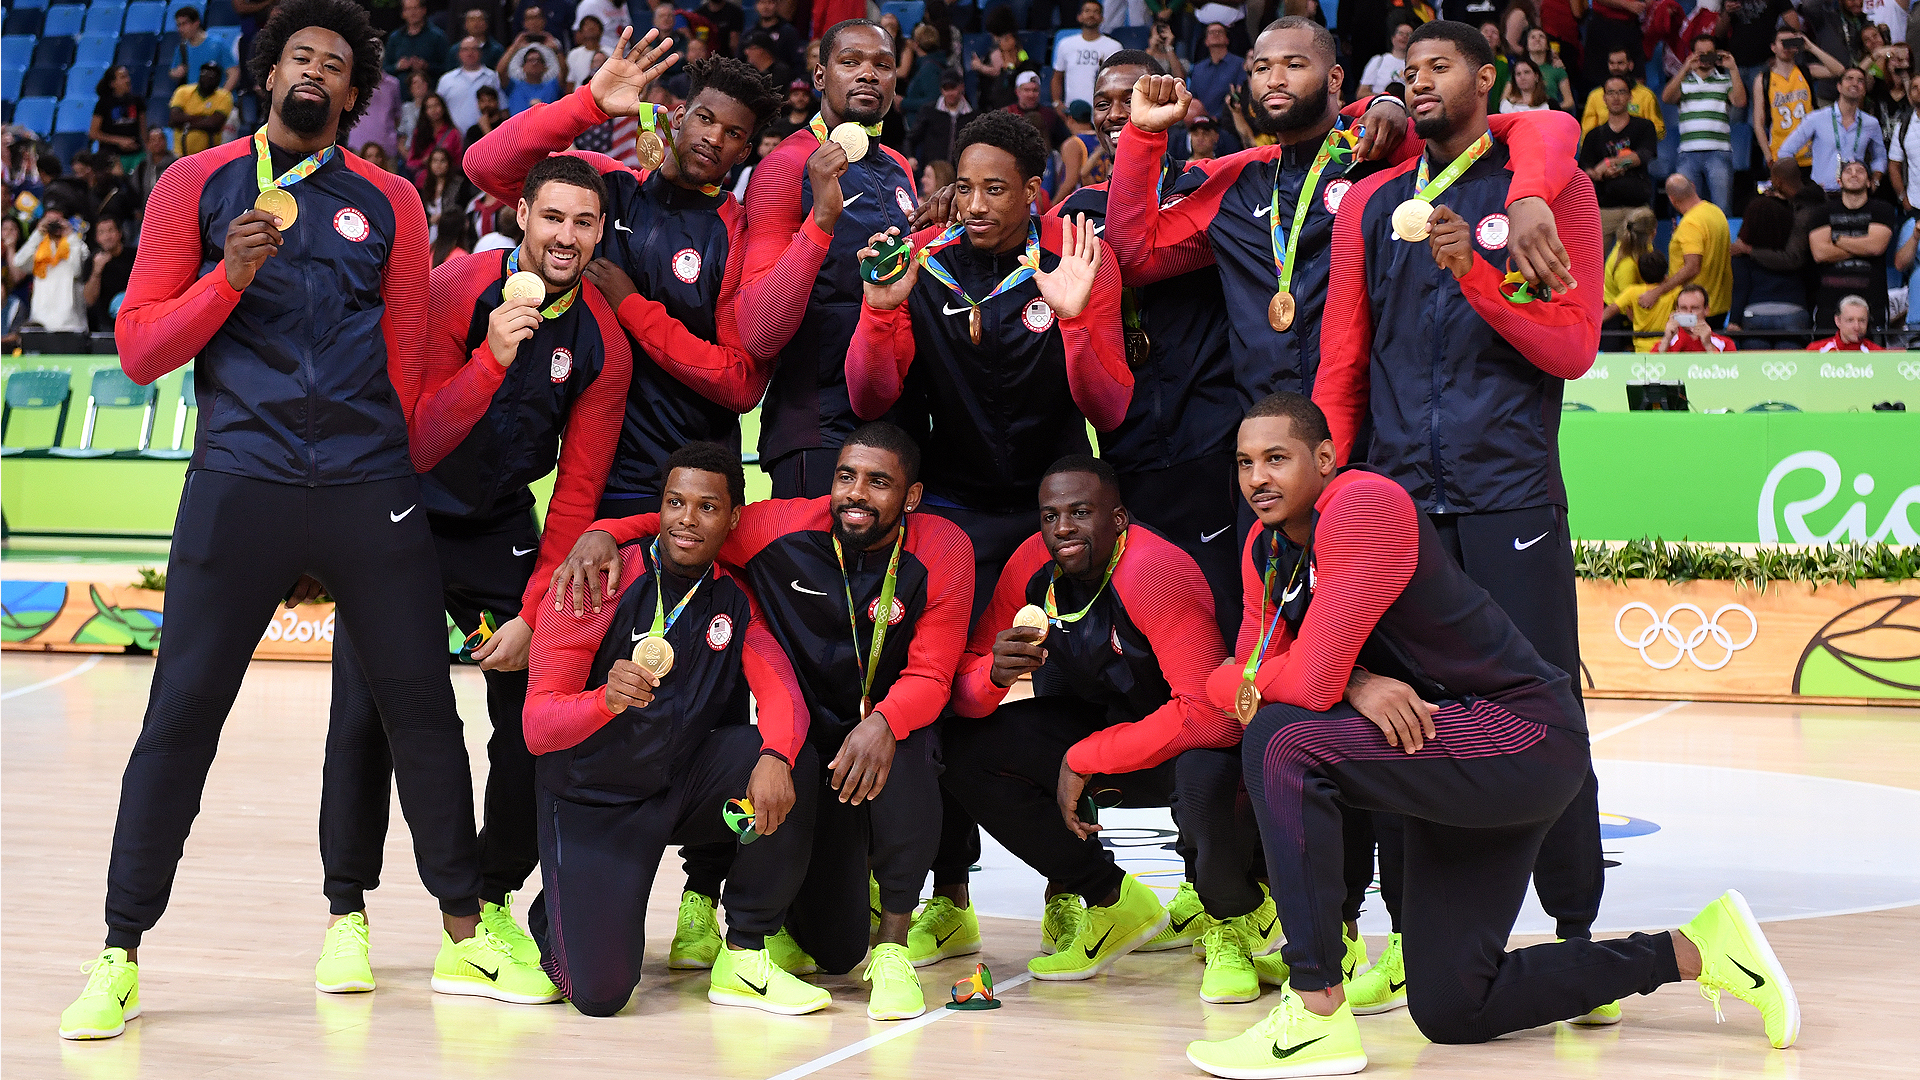 Team USA suffers another basketball loss ahead of Olympics